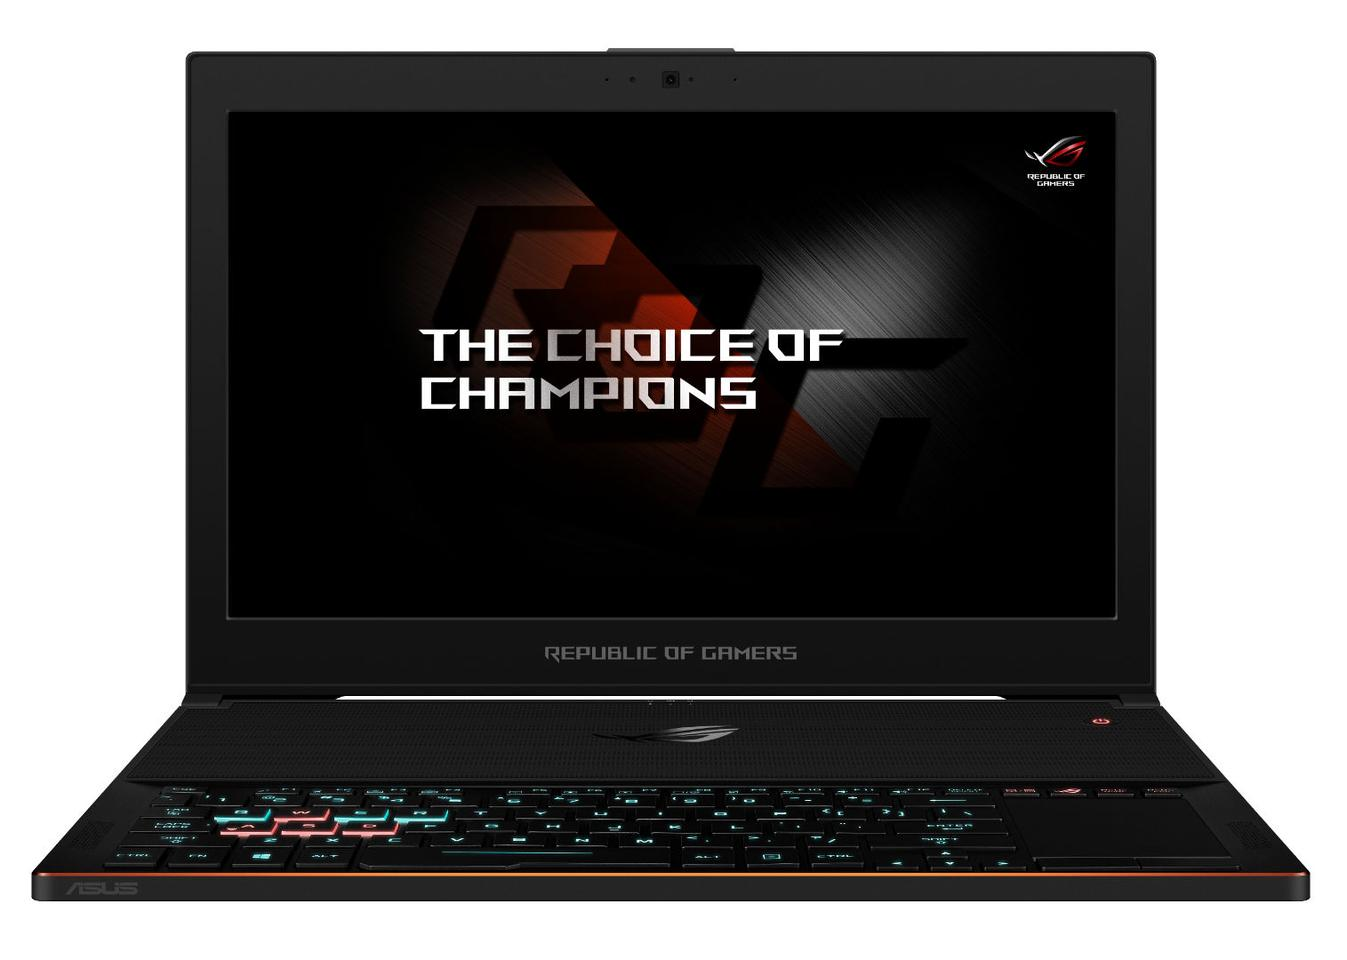 Asus has positioned the backlit keyboard to the front of the chassis